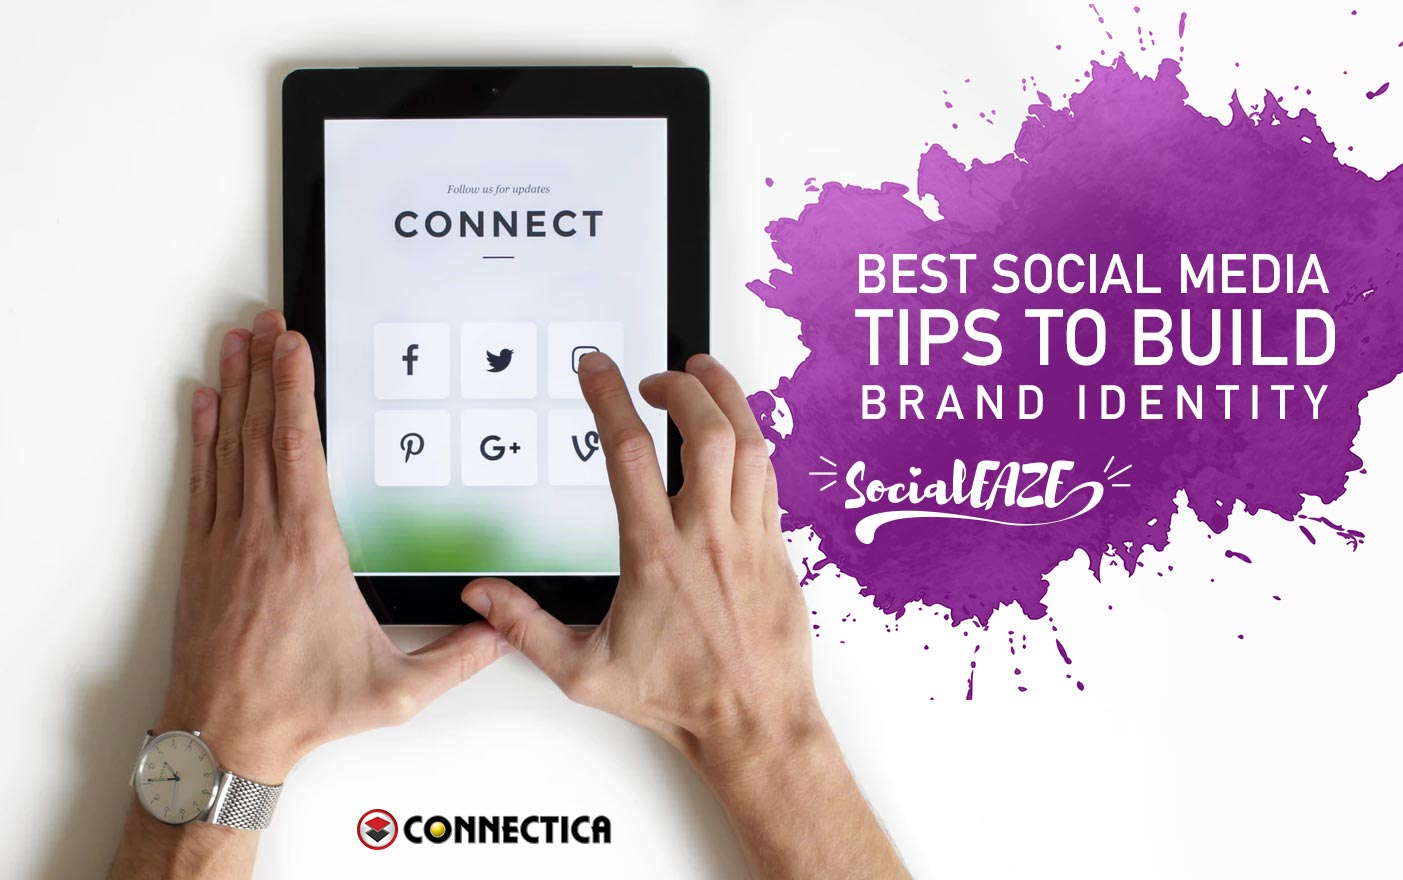 Best Social Media Tips To Build Brand Identity